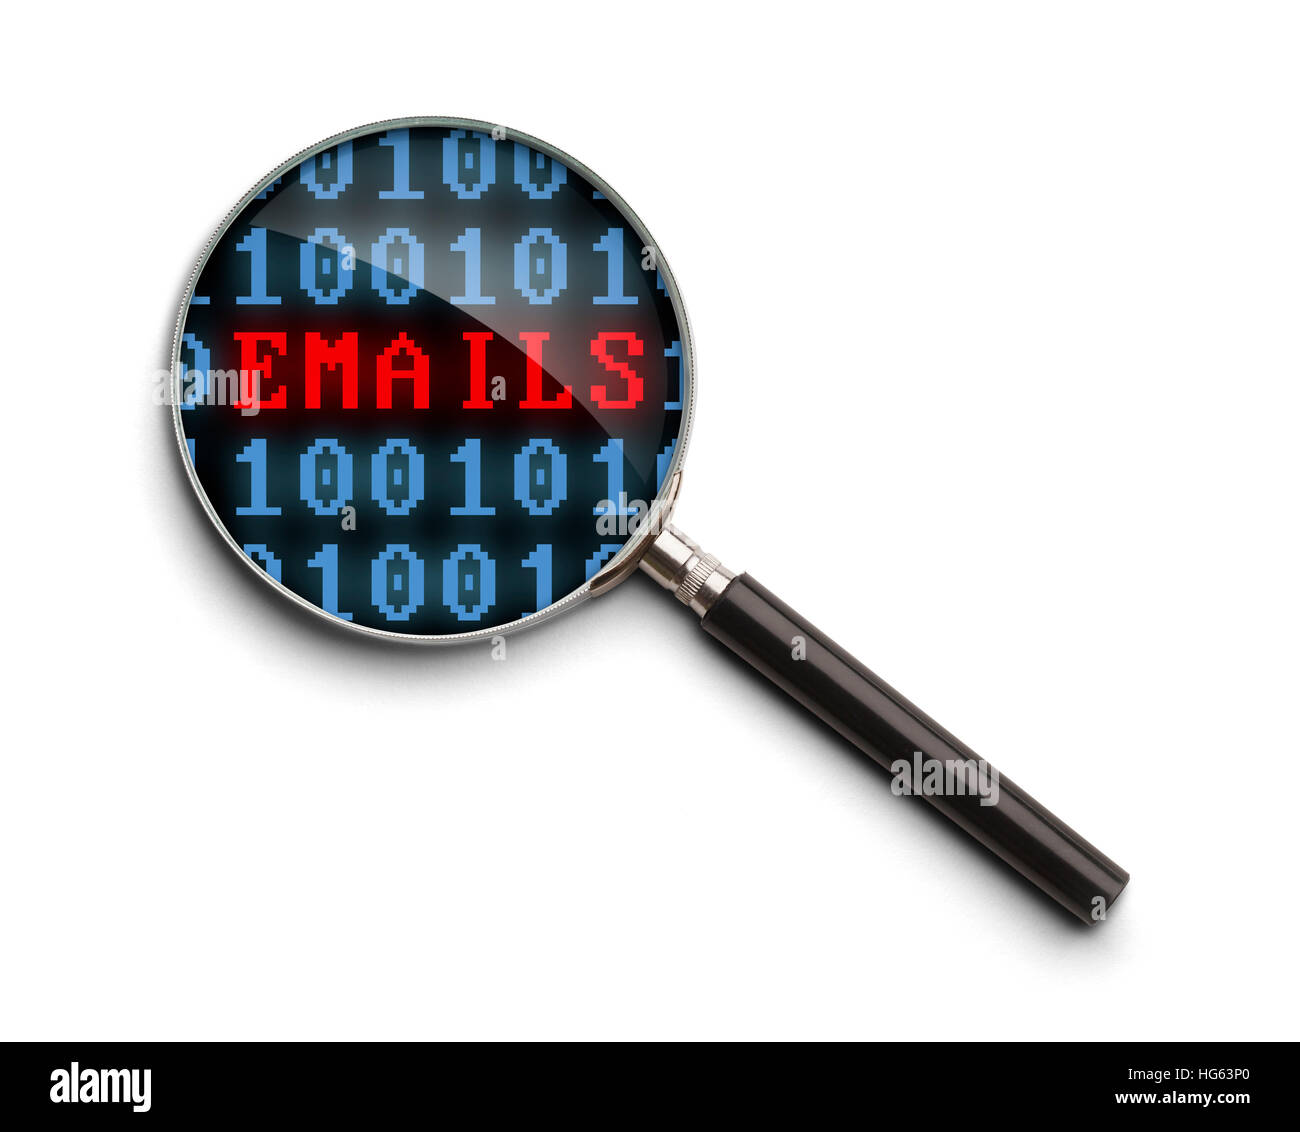 Computer Code  Email Investigation Magnifying Glass Isolated on a White Background. - Stock Image